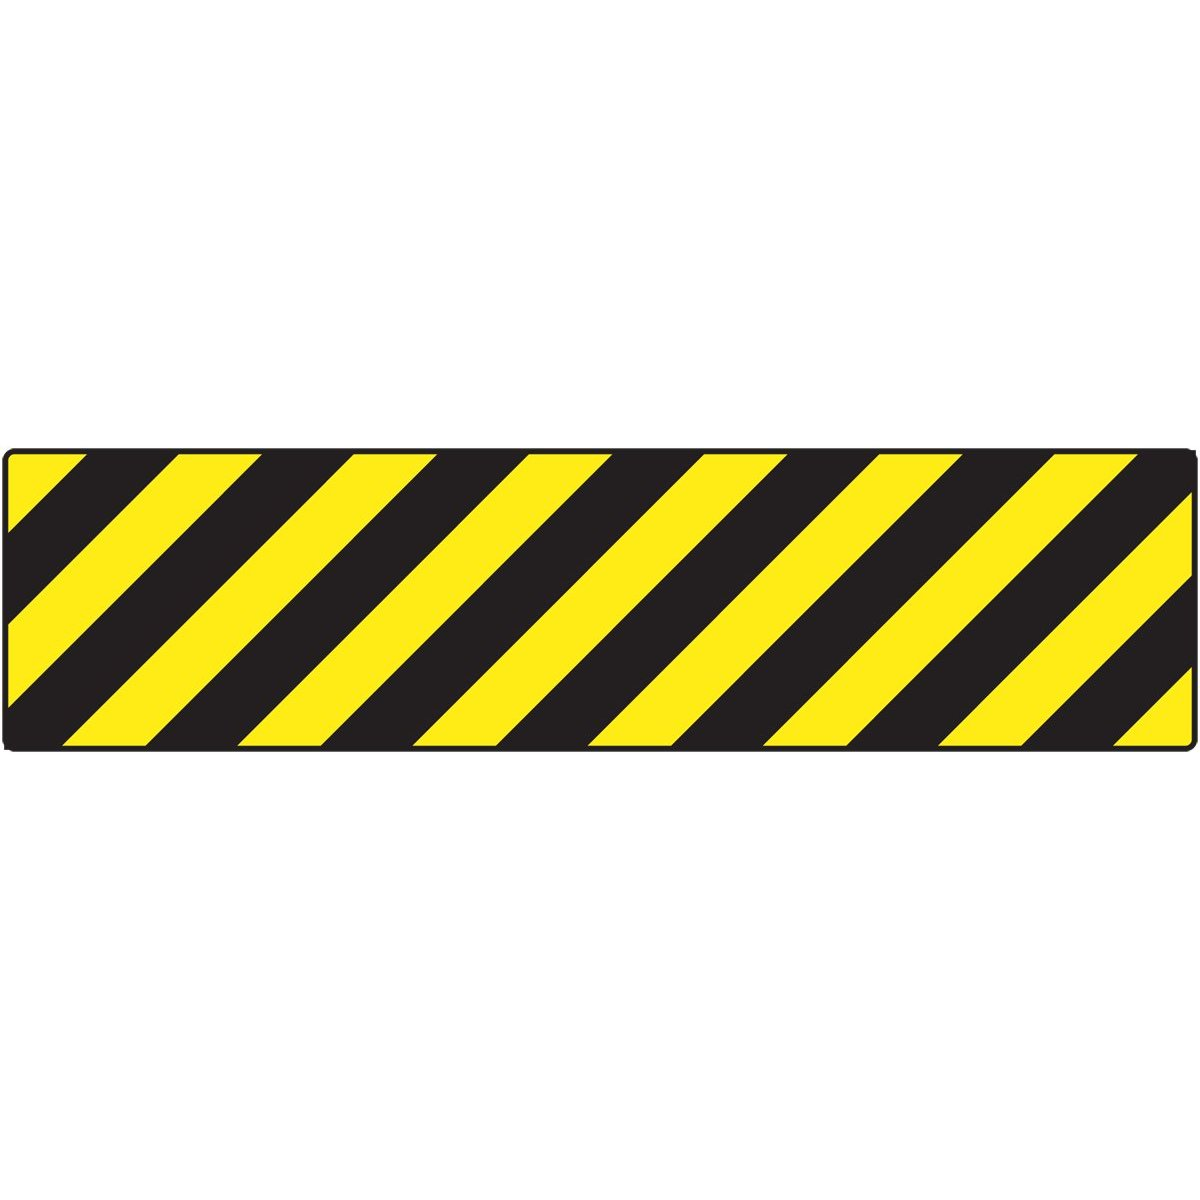 Caution Tape Border   Clipart Best